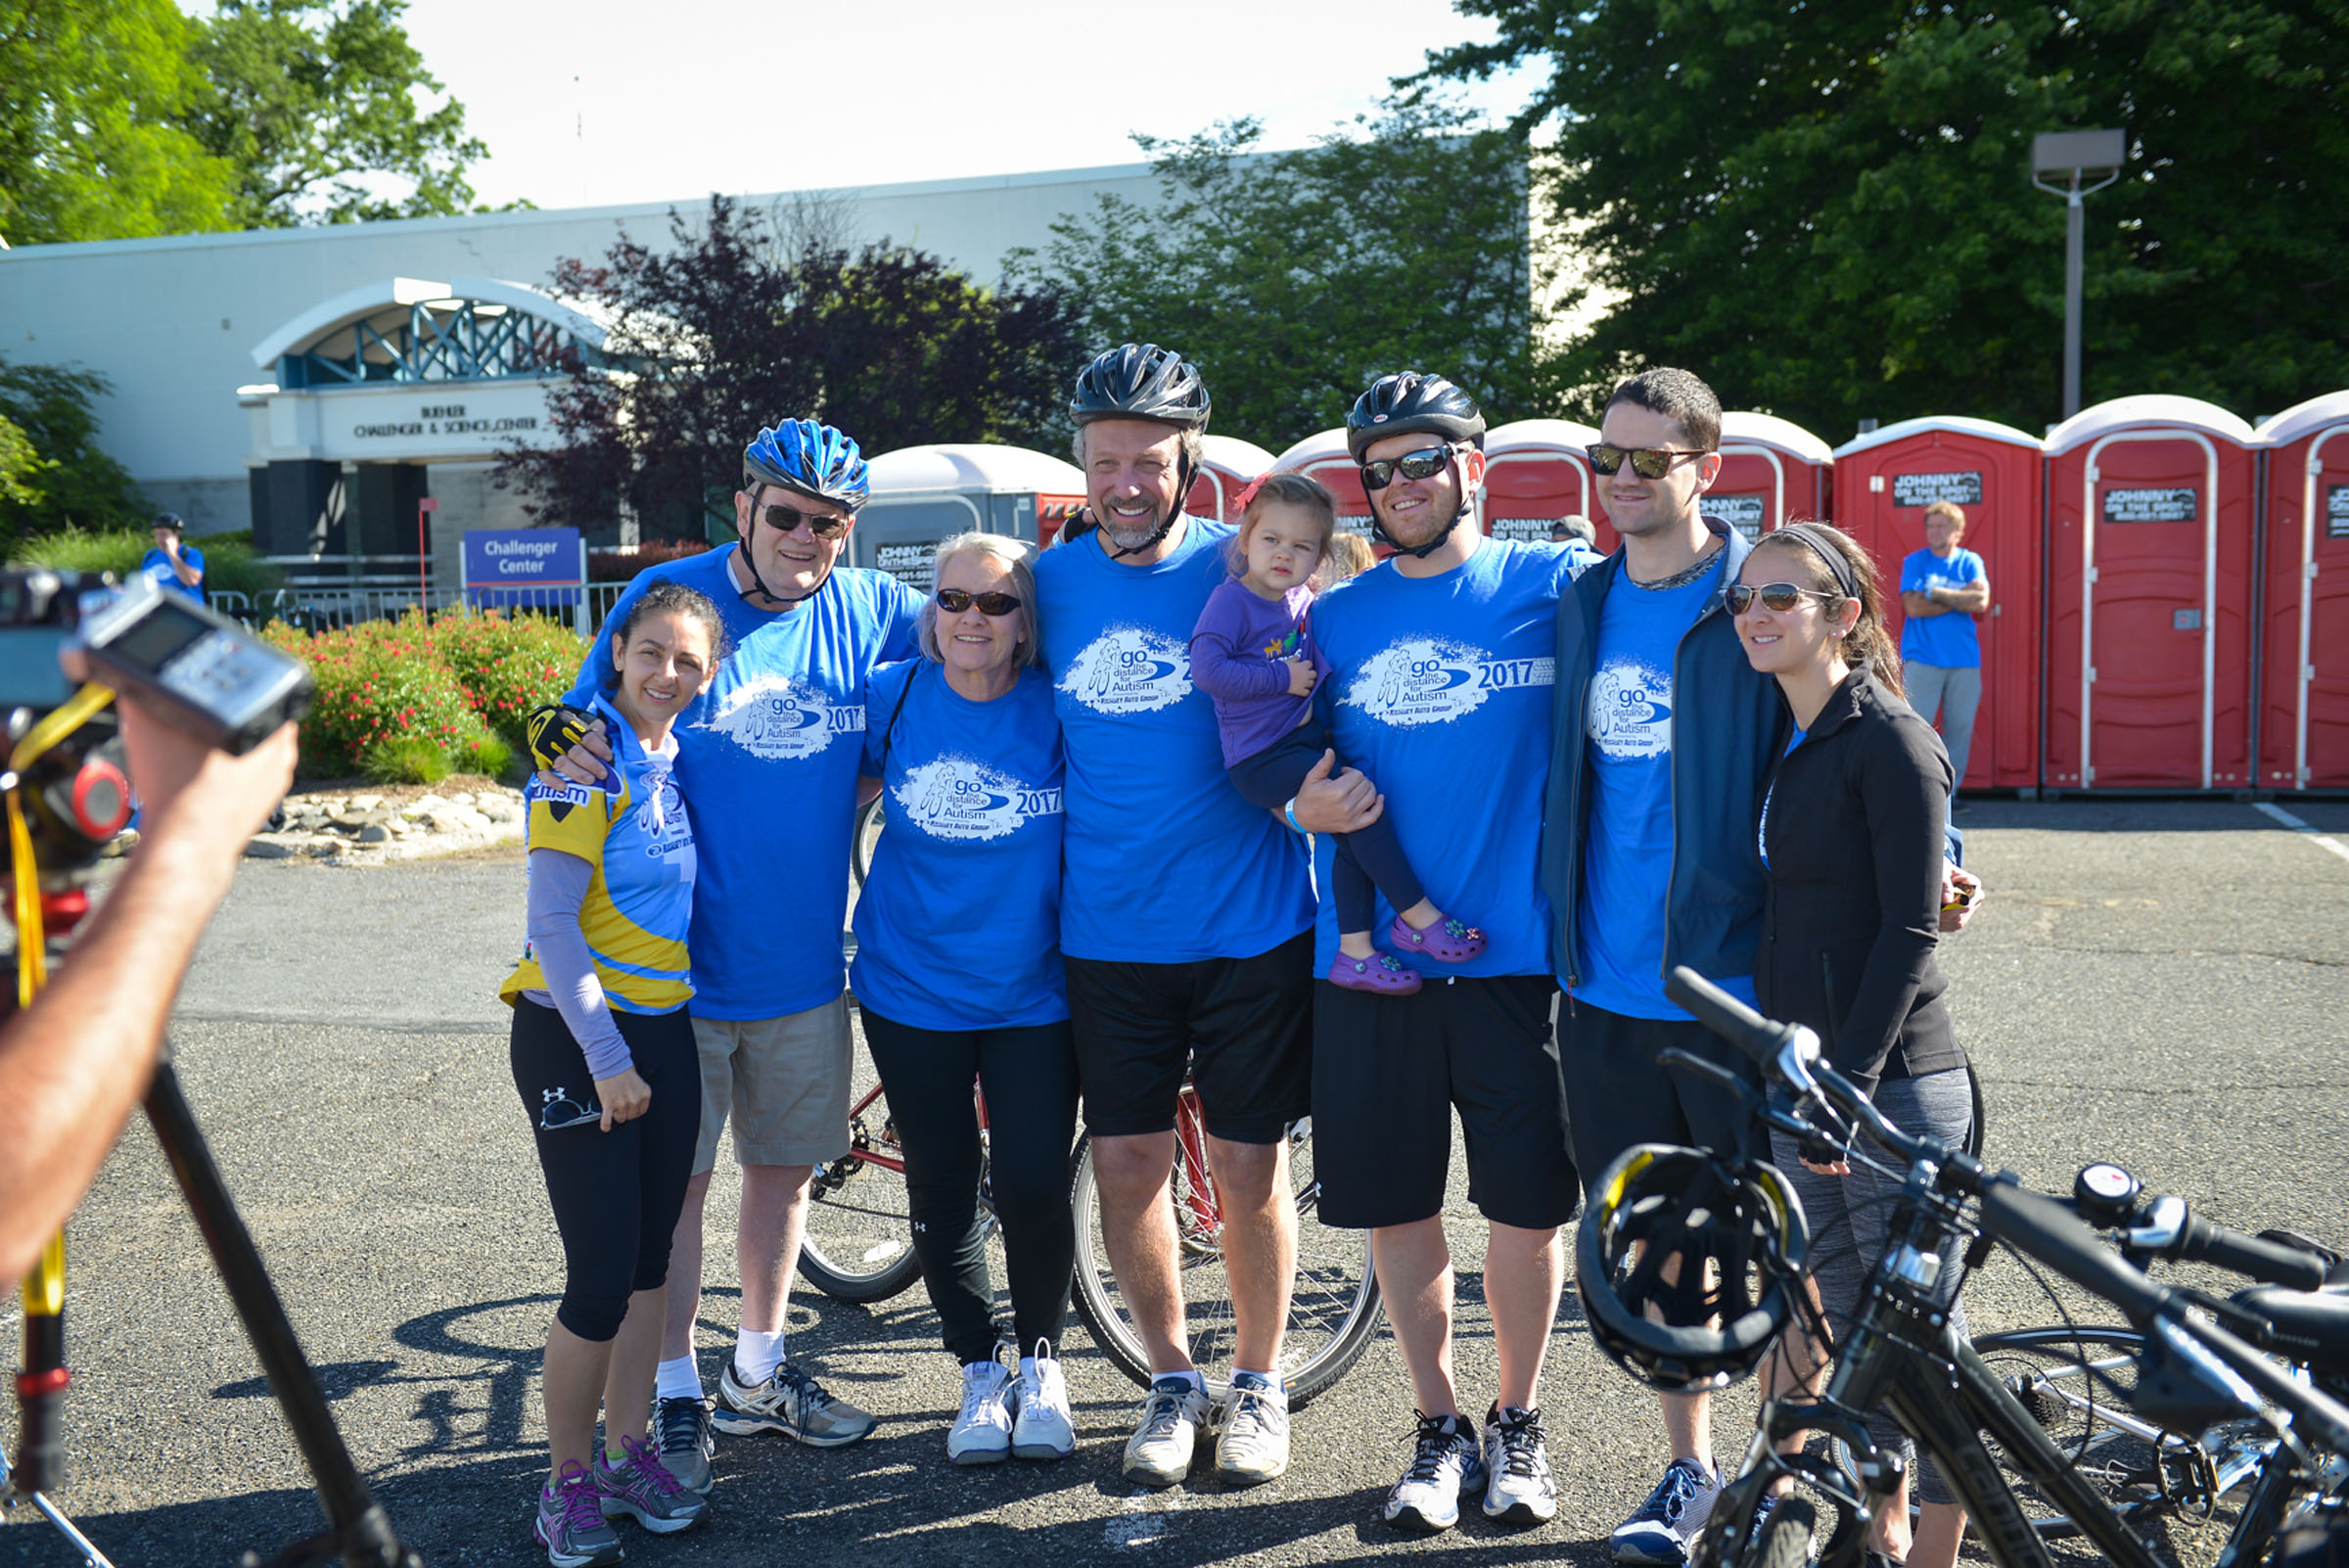 2017-06-04 GTD4A Charity Bike Ride - BCC - Paramus NJ-1840.jpg